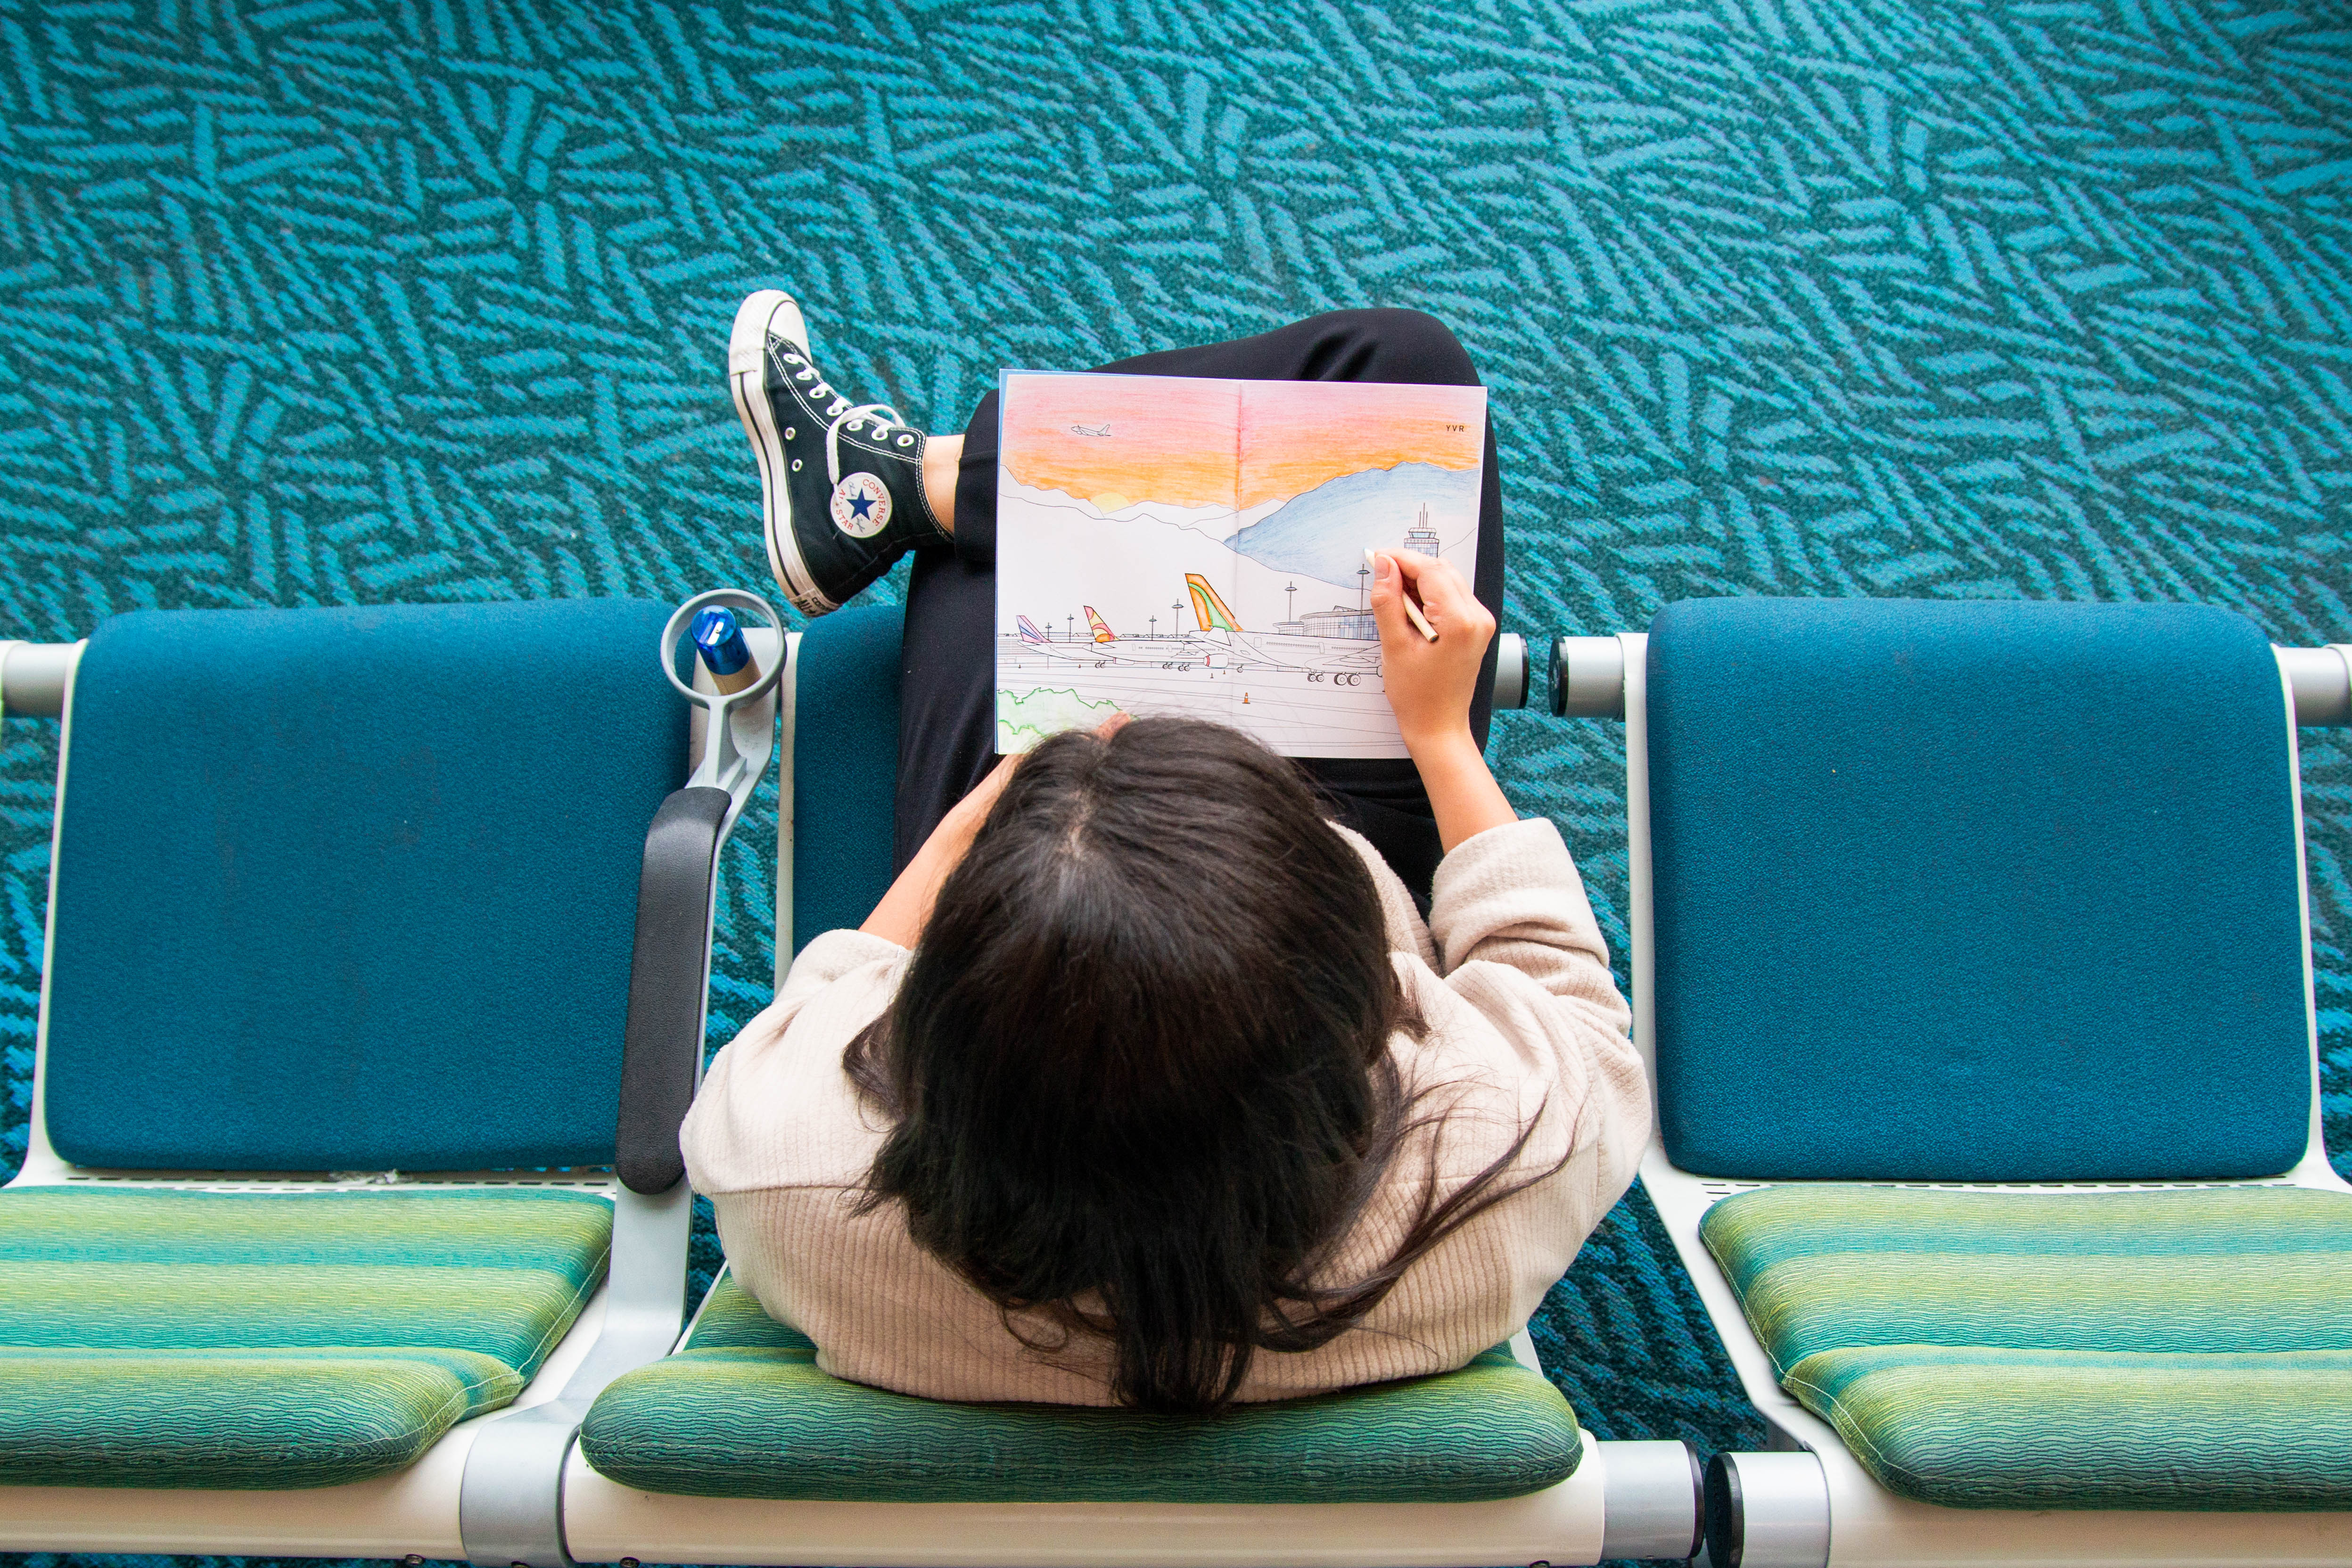 A passenger using the Fly Calm colouring book at the airport.